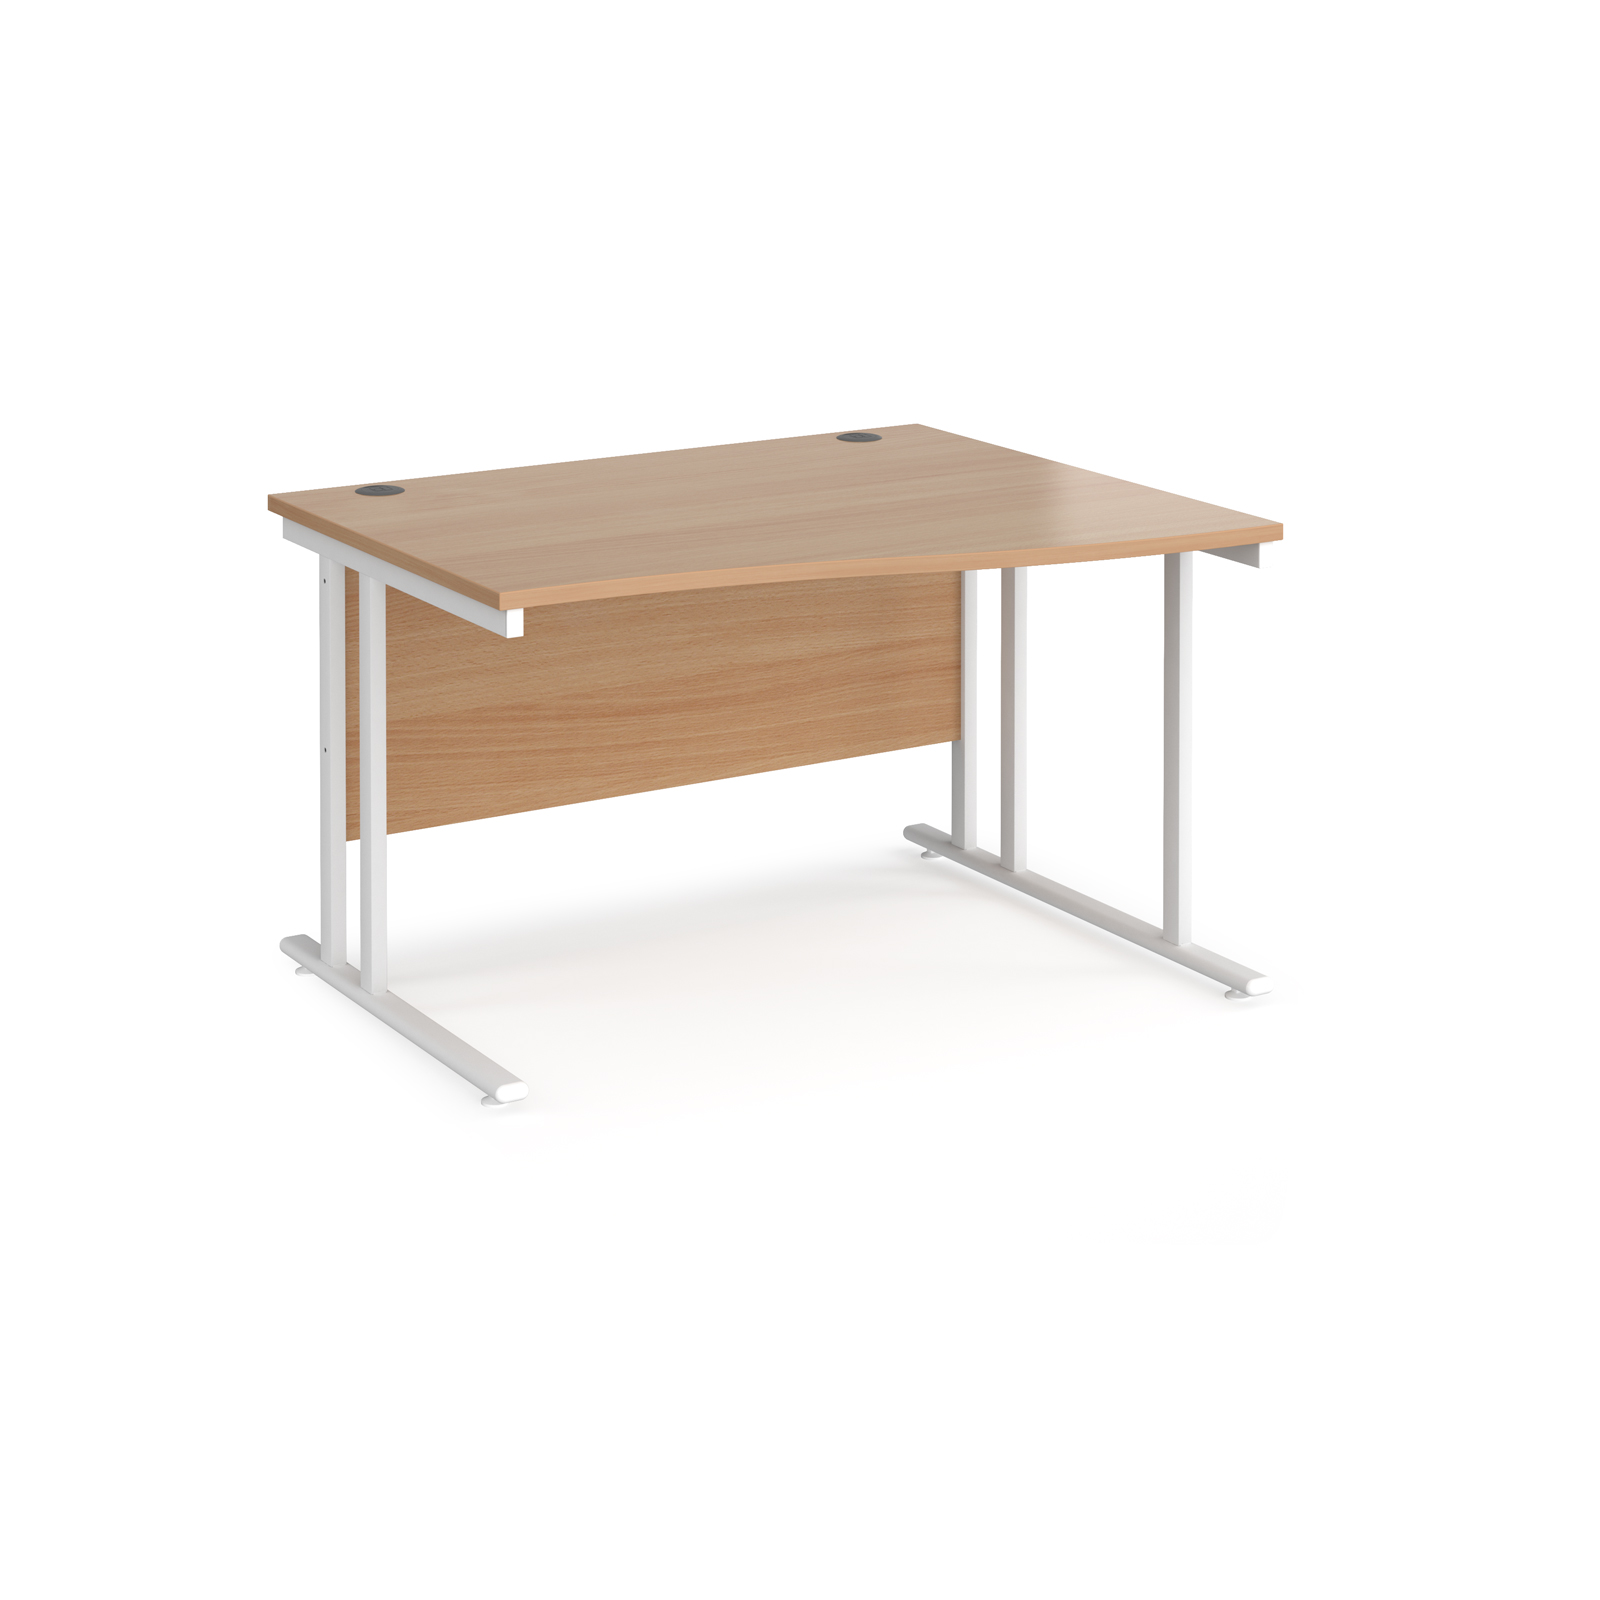 Right Handed Maestro 25 right hand wave desk 1200mm wide - white cantilever leg frame, beech top